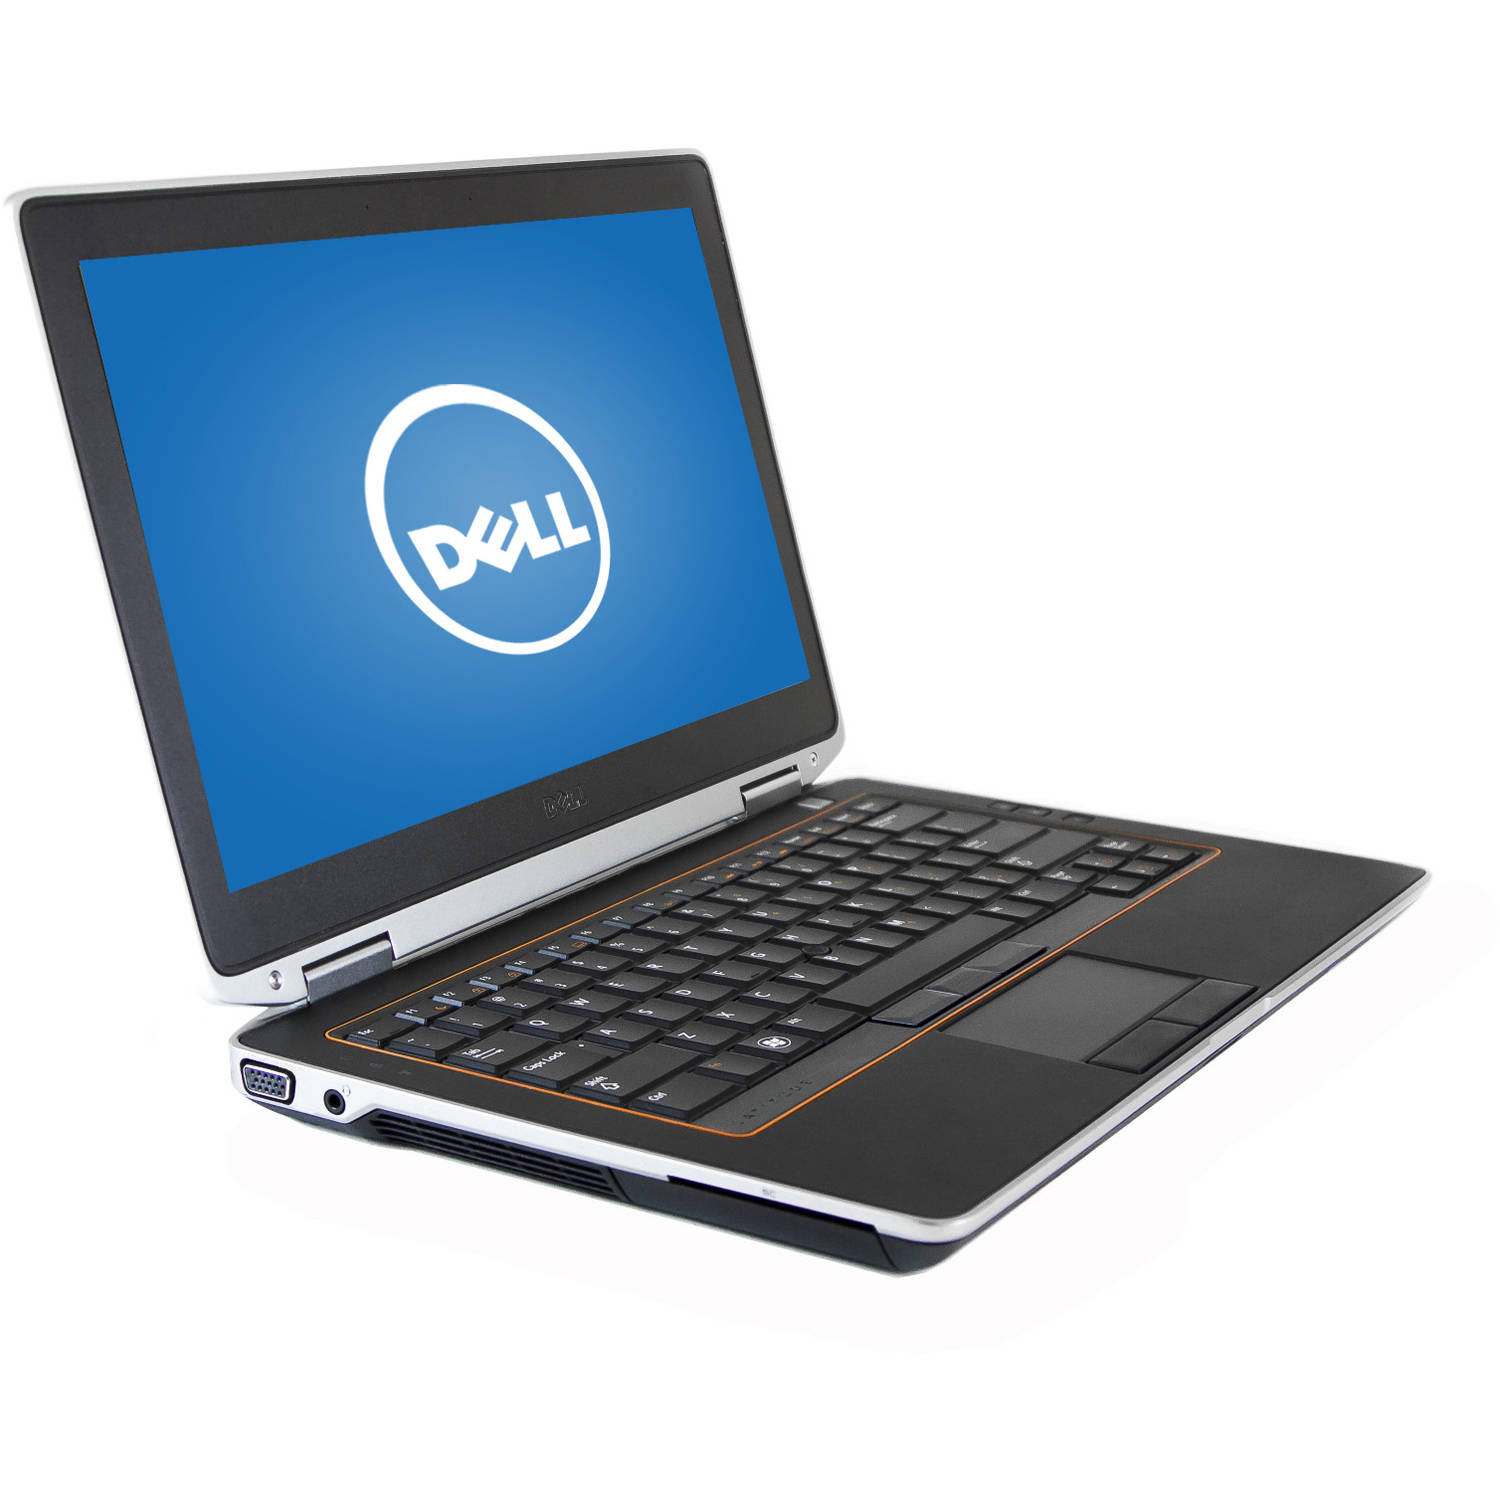 "Refurbished Dell Black 13.3"" Latitude E6320 WA5-0976 Laptop PC with Intel Core i5-2520M Processor, 8GB Memory, 750GB Hard Drive and Windows 10 Home"